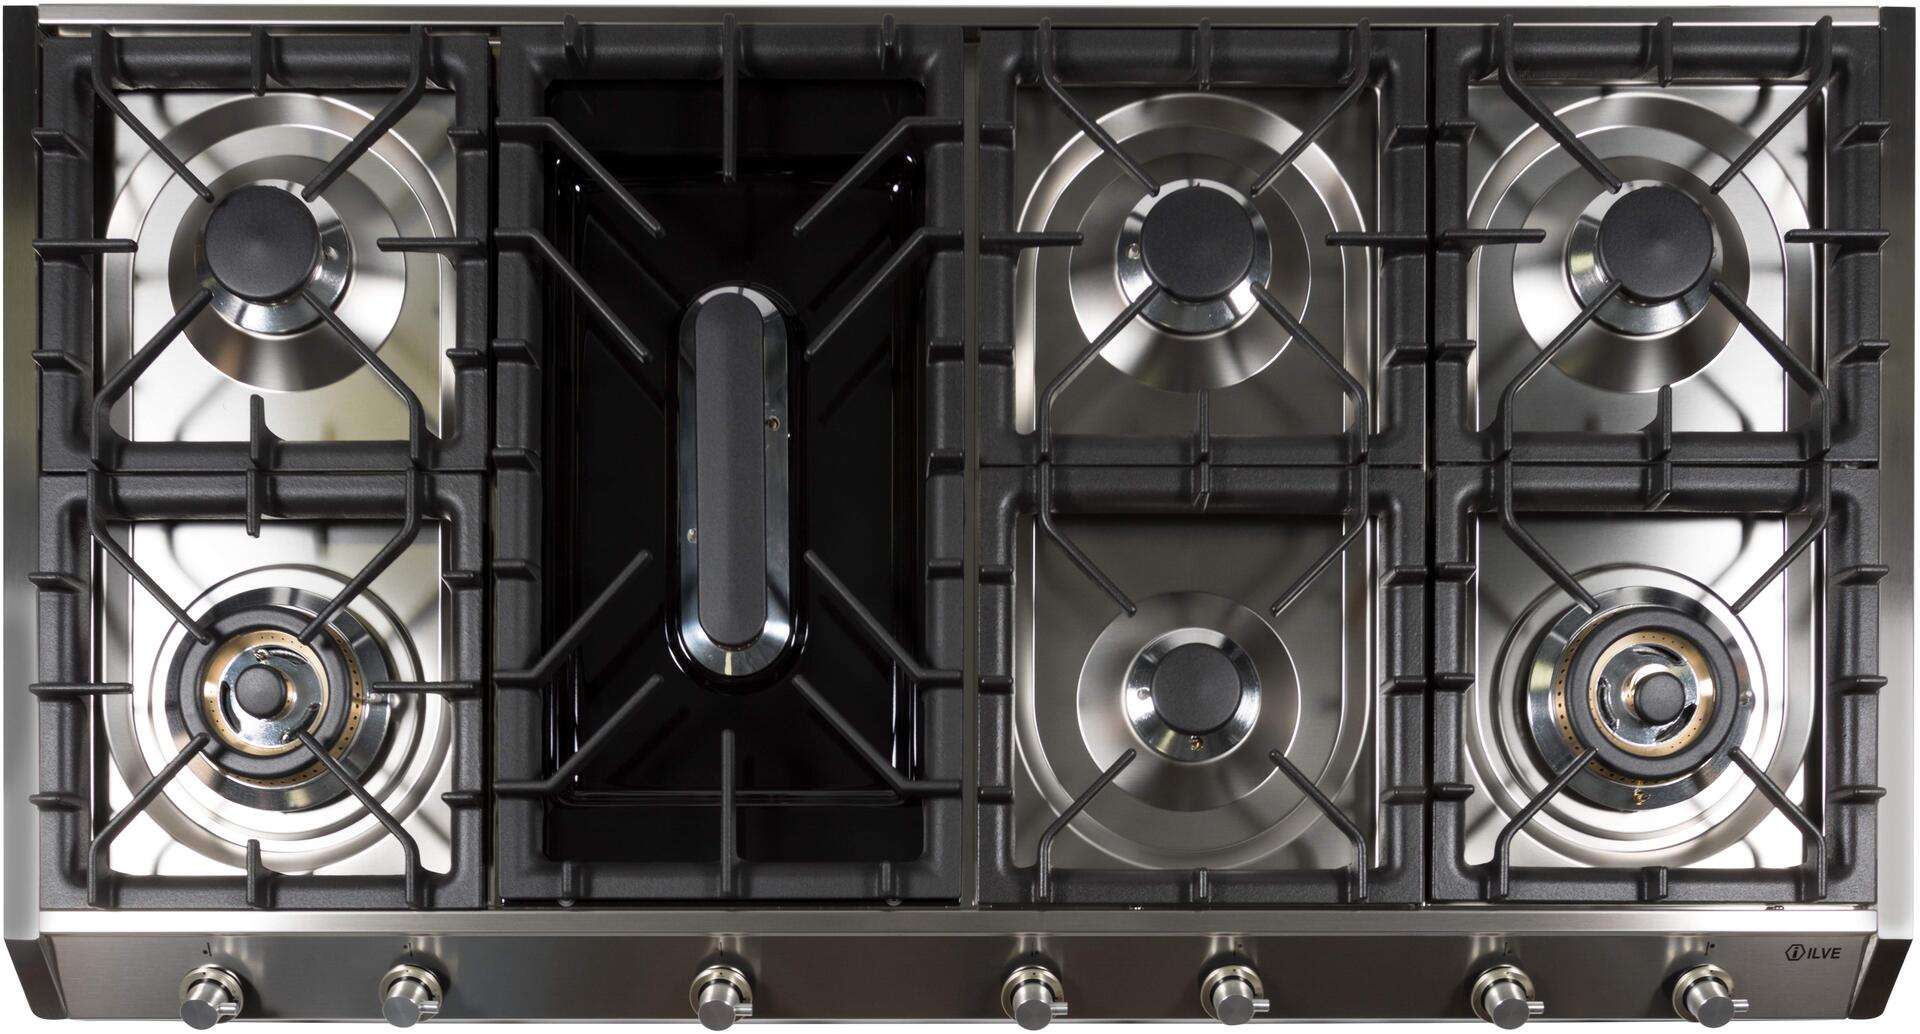 Ilve  UHP1265FDILP Gas Cooktop Stainless Steel, UHP1265FDI Cooktop without Griddle